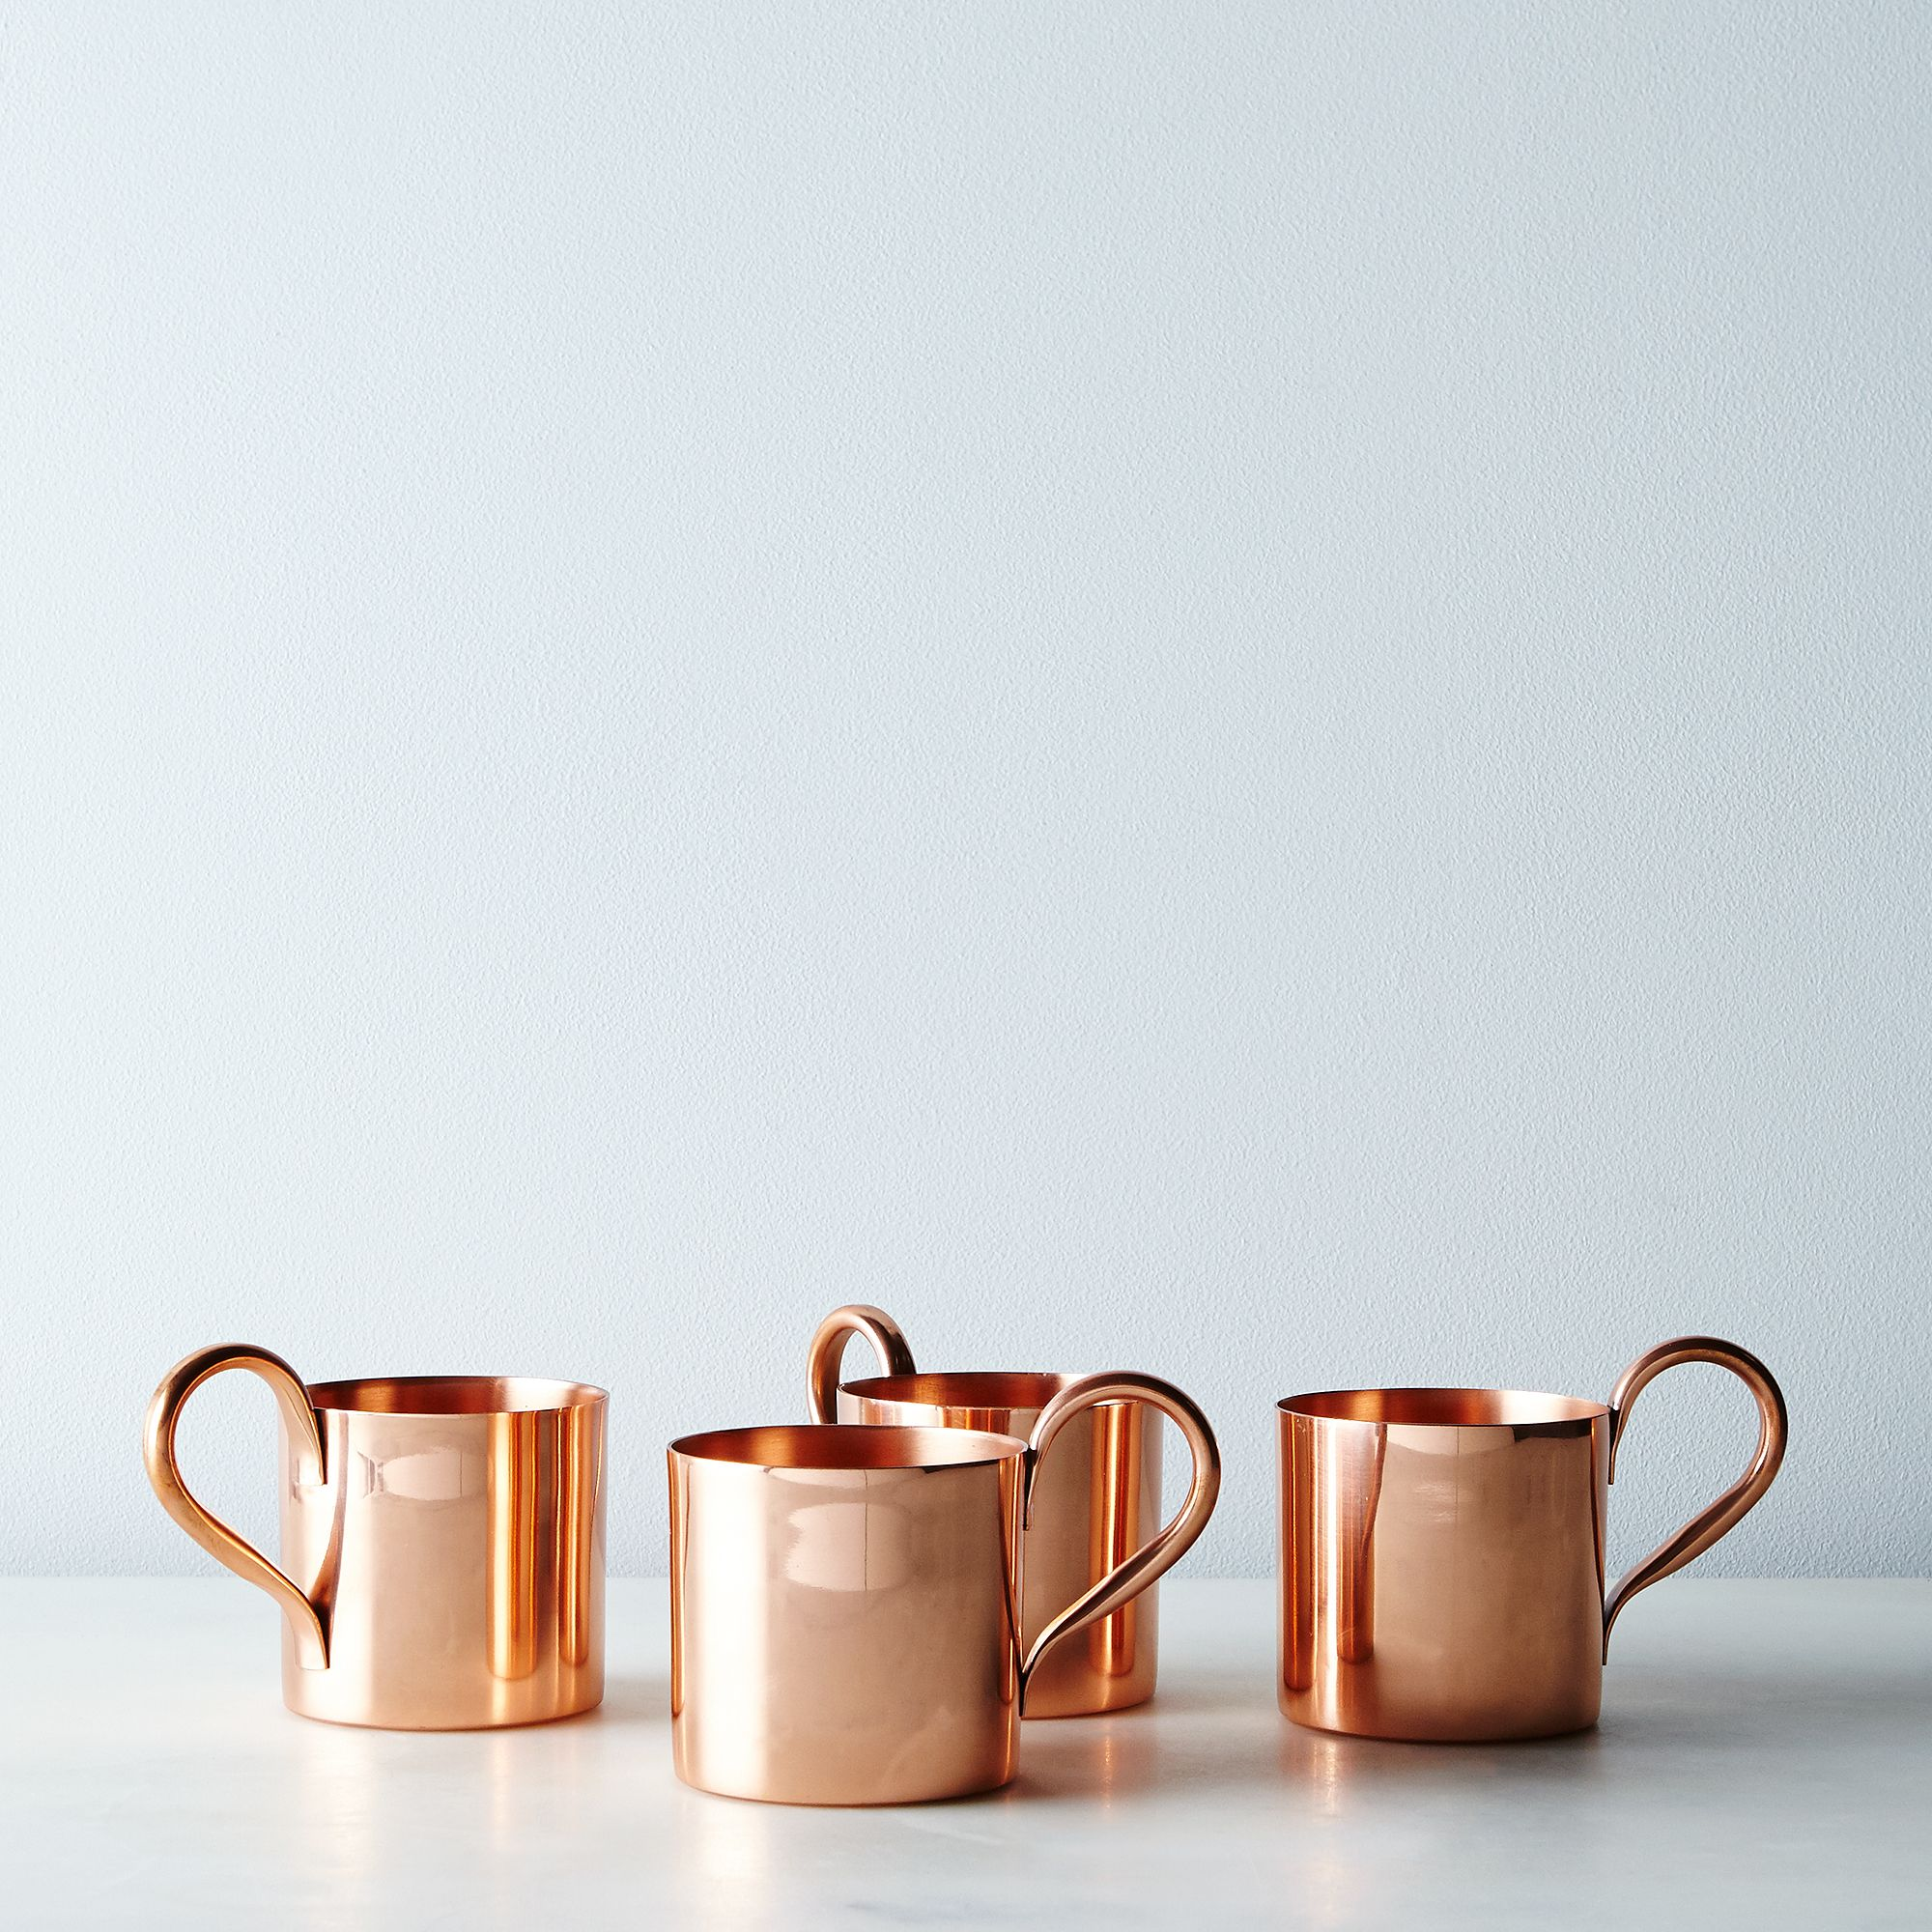 A7663371 ca96 40b9 b086 47ed7f26bedd  2015 0807 cocktail kingdom copper moscow mule mug silo set of 4 rocky luten 007